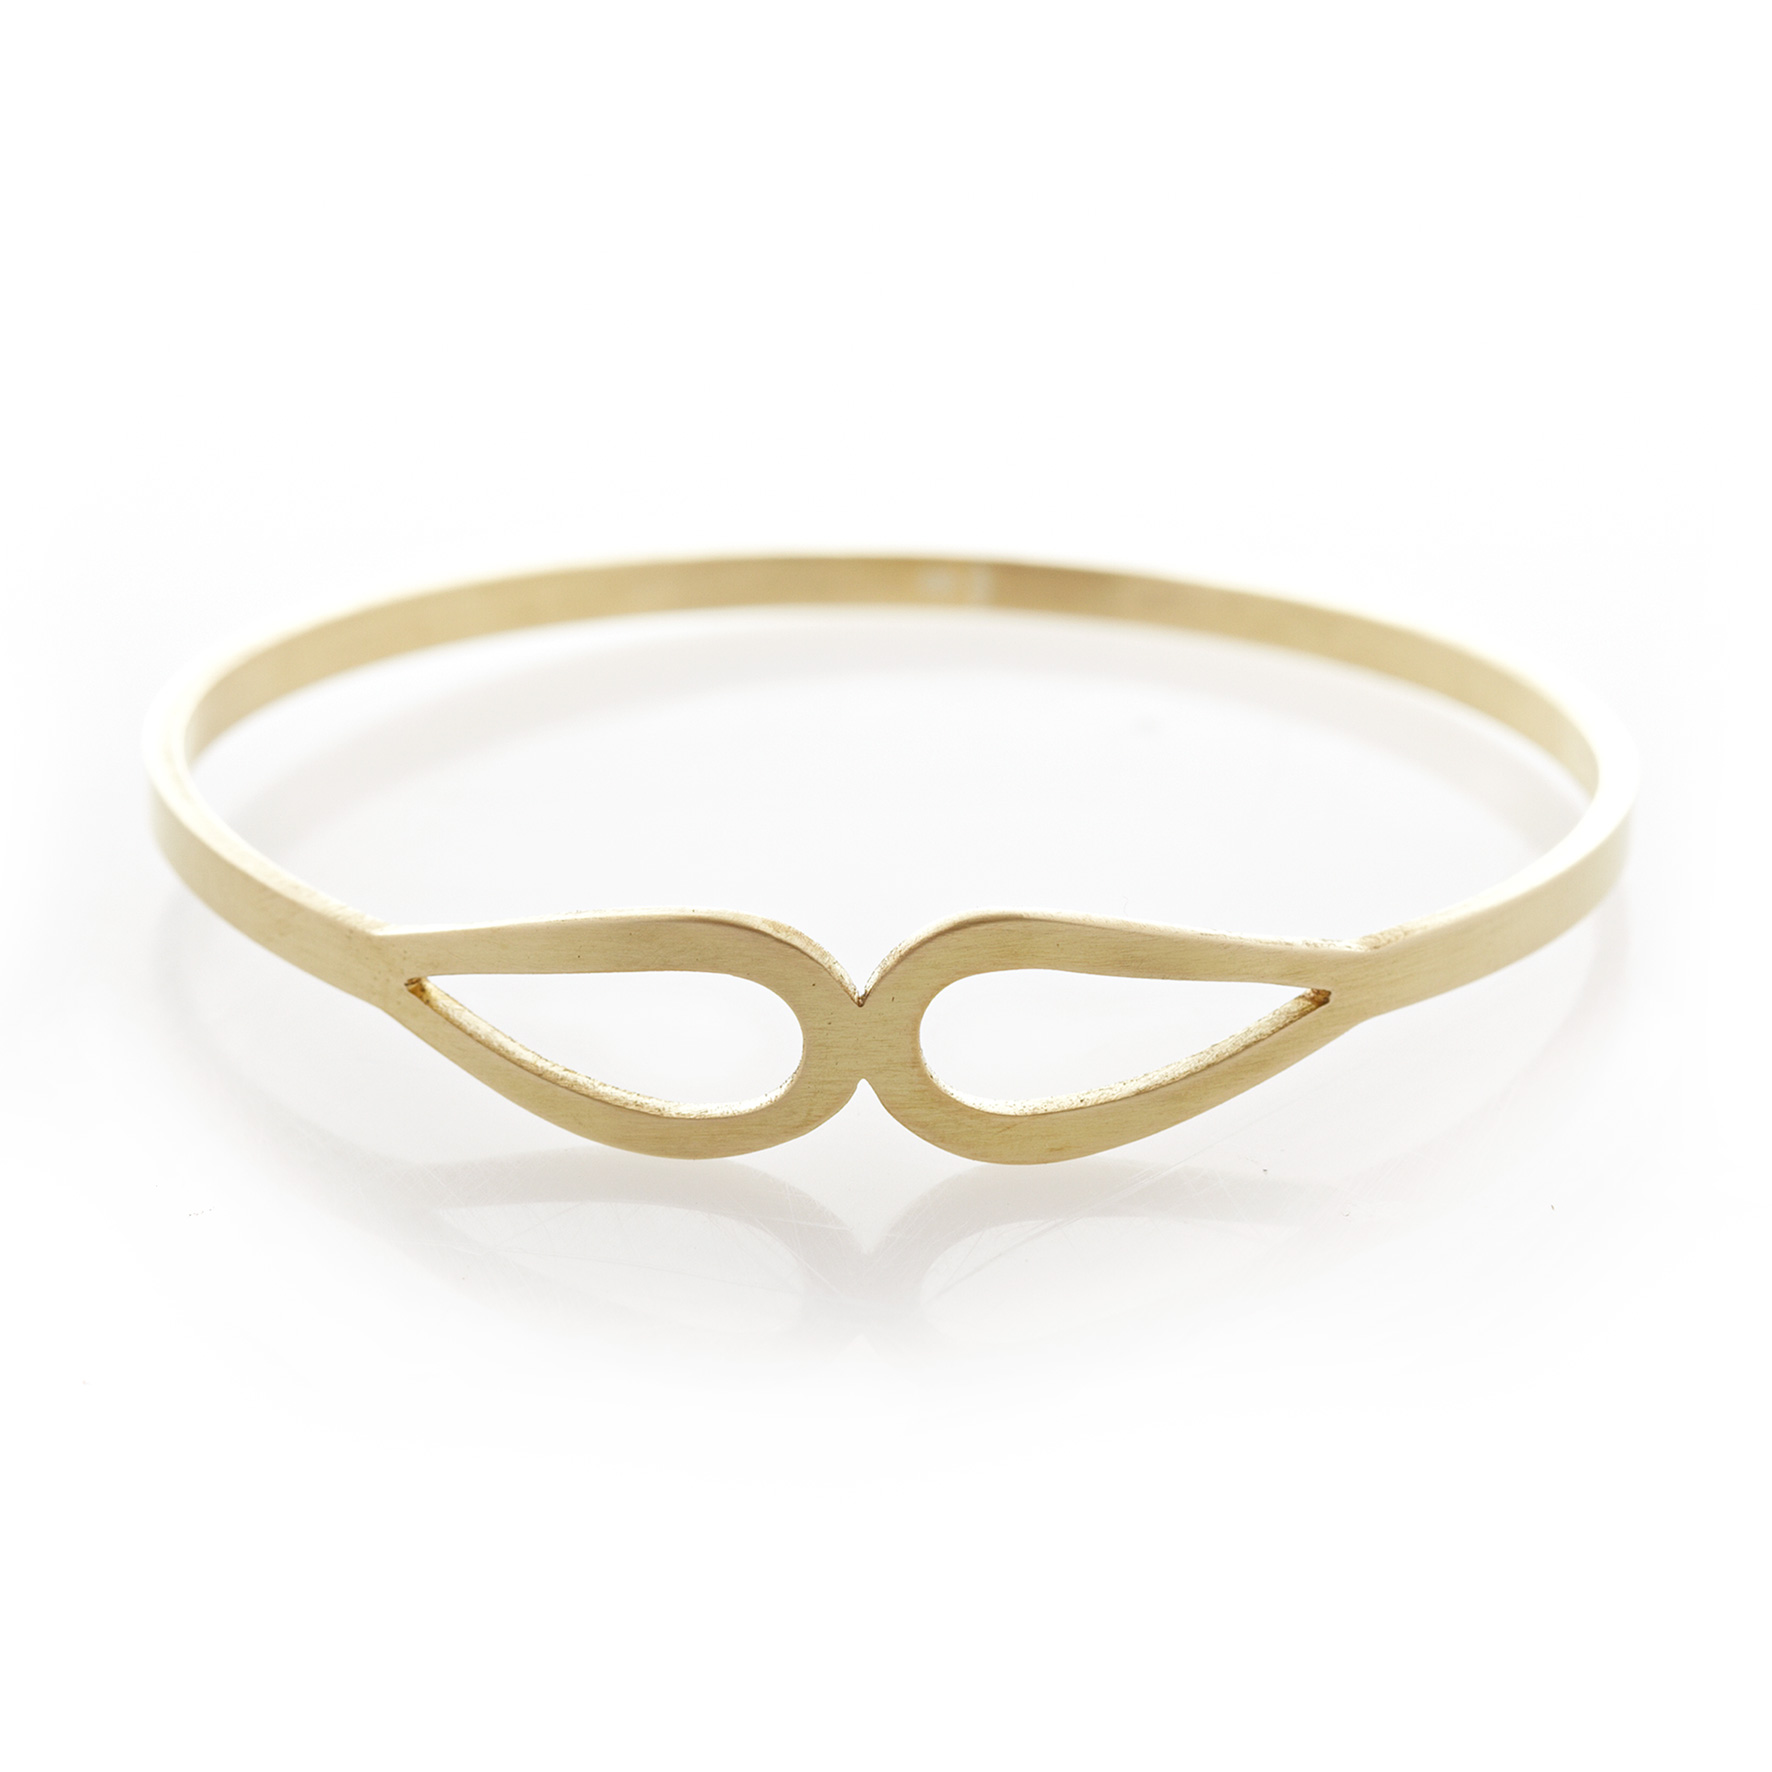 Two teardrop brass bangle